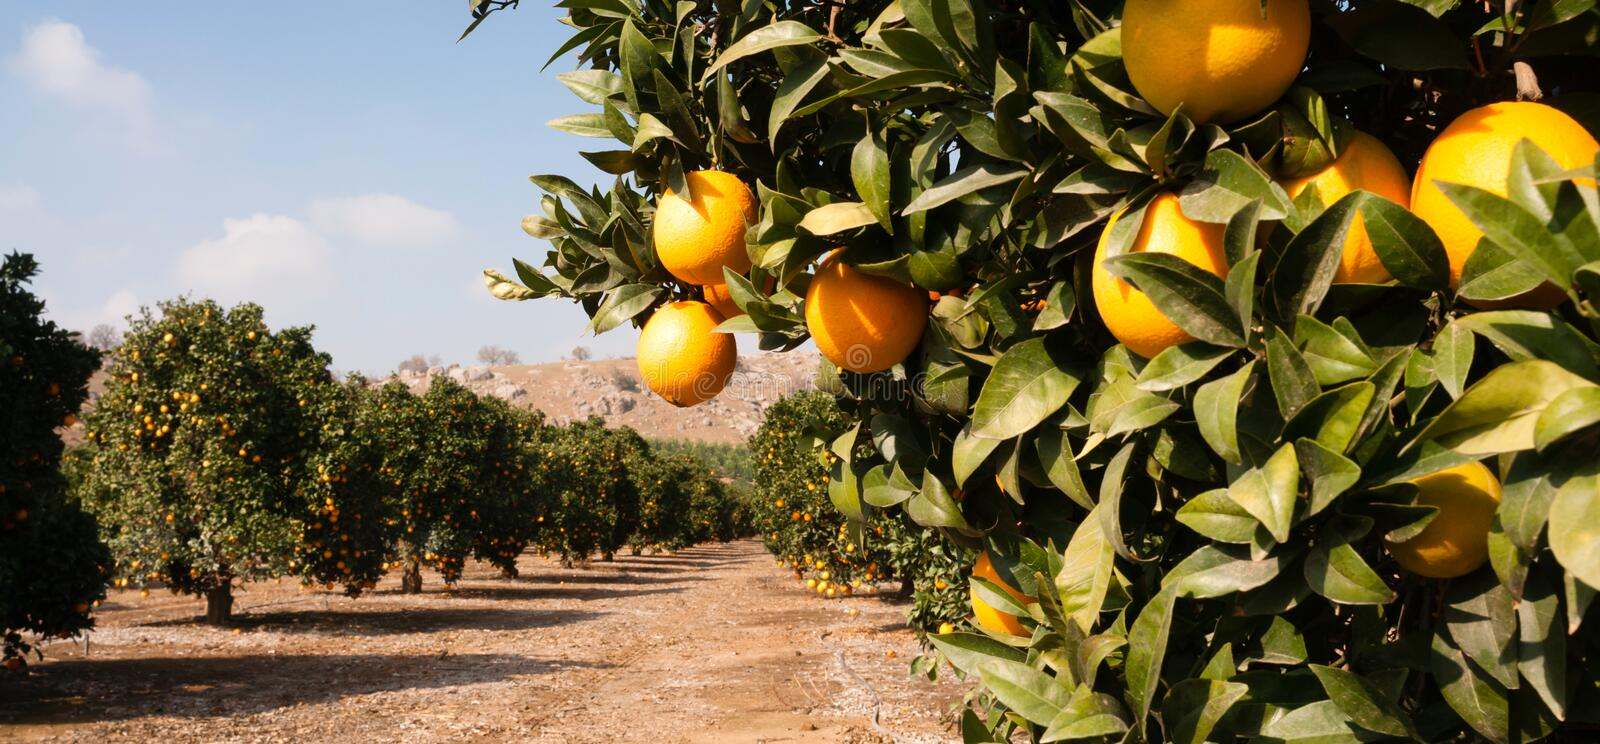 Raw Food Fruit Oranges Ripening Agriculture Farm Orange Grove. Good sun is one of the keys to a productive orange grove royalty free stock photo